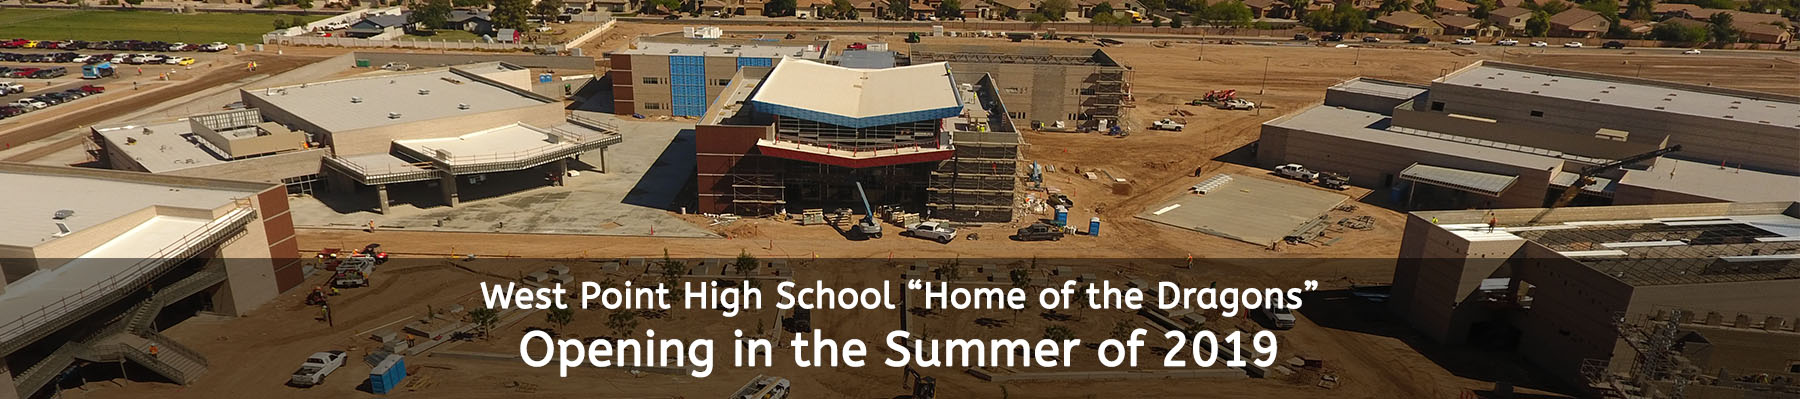 West Point High School - Home of the Dragons - Opening in the summer of 2019